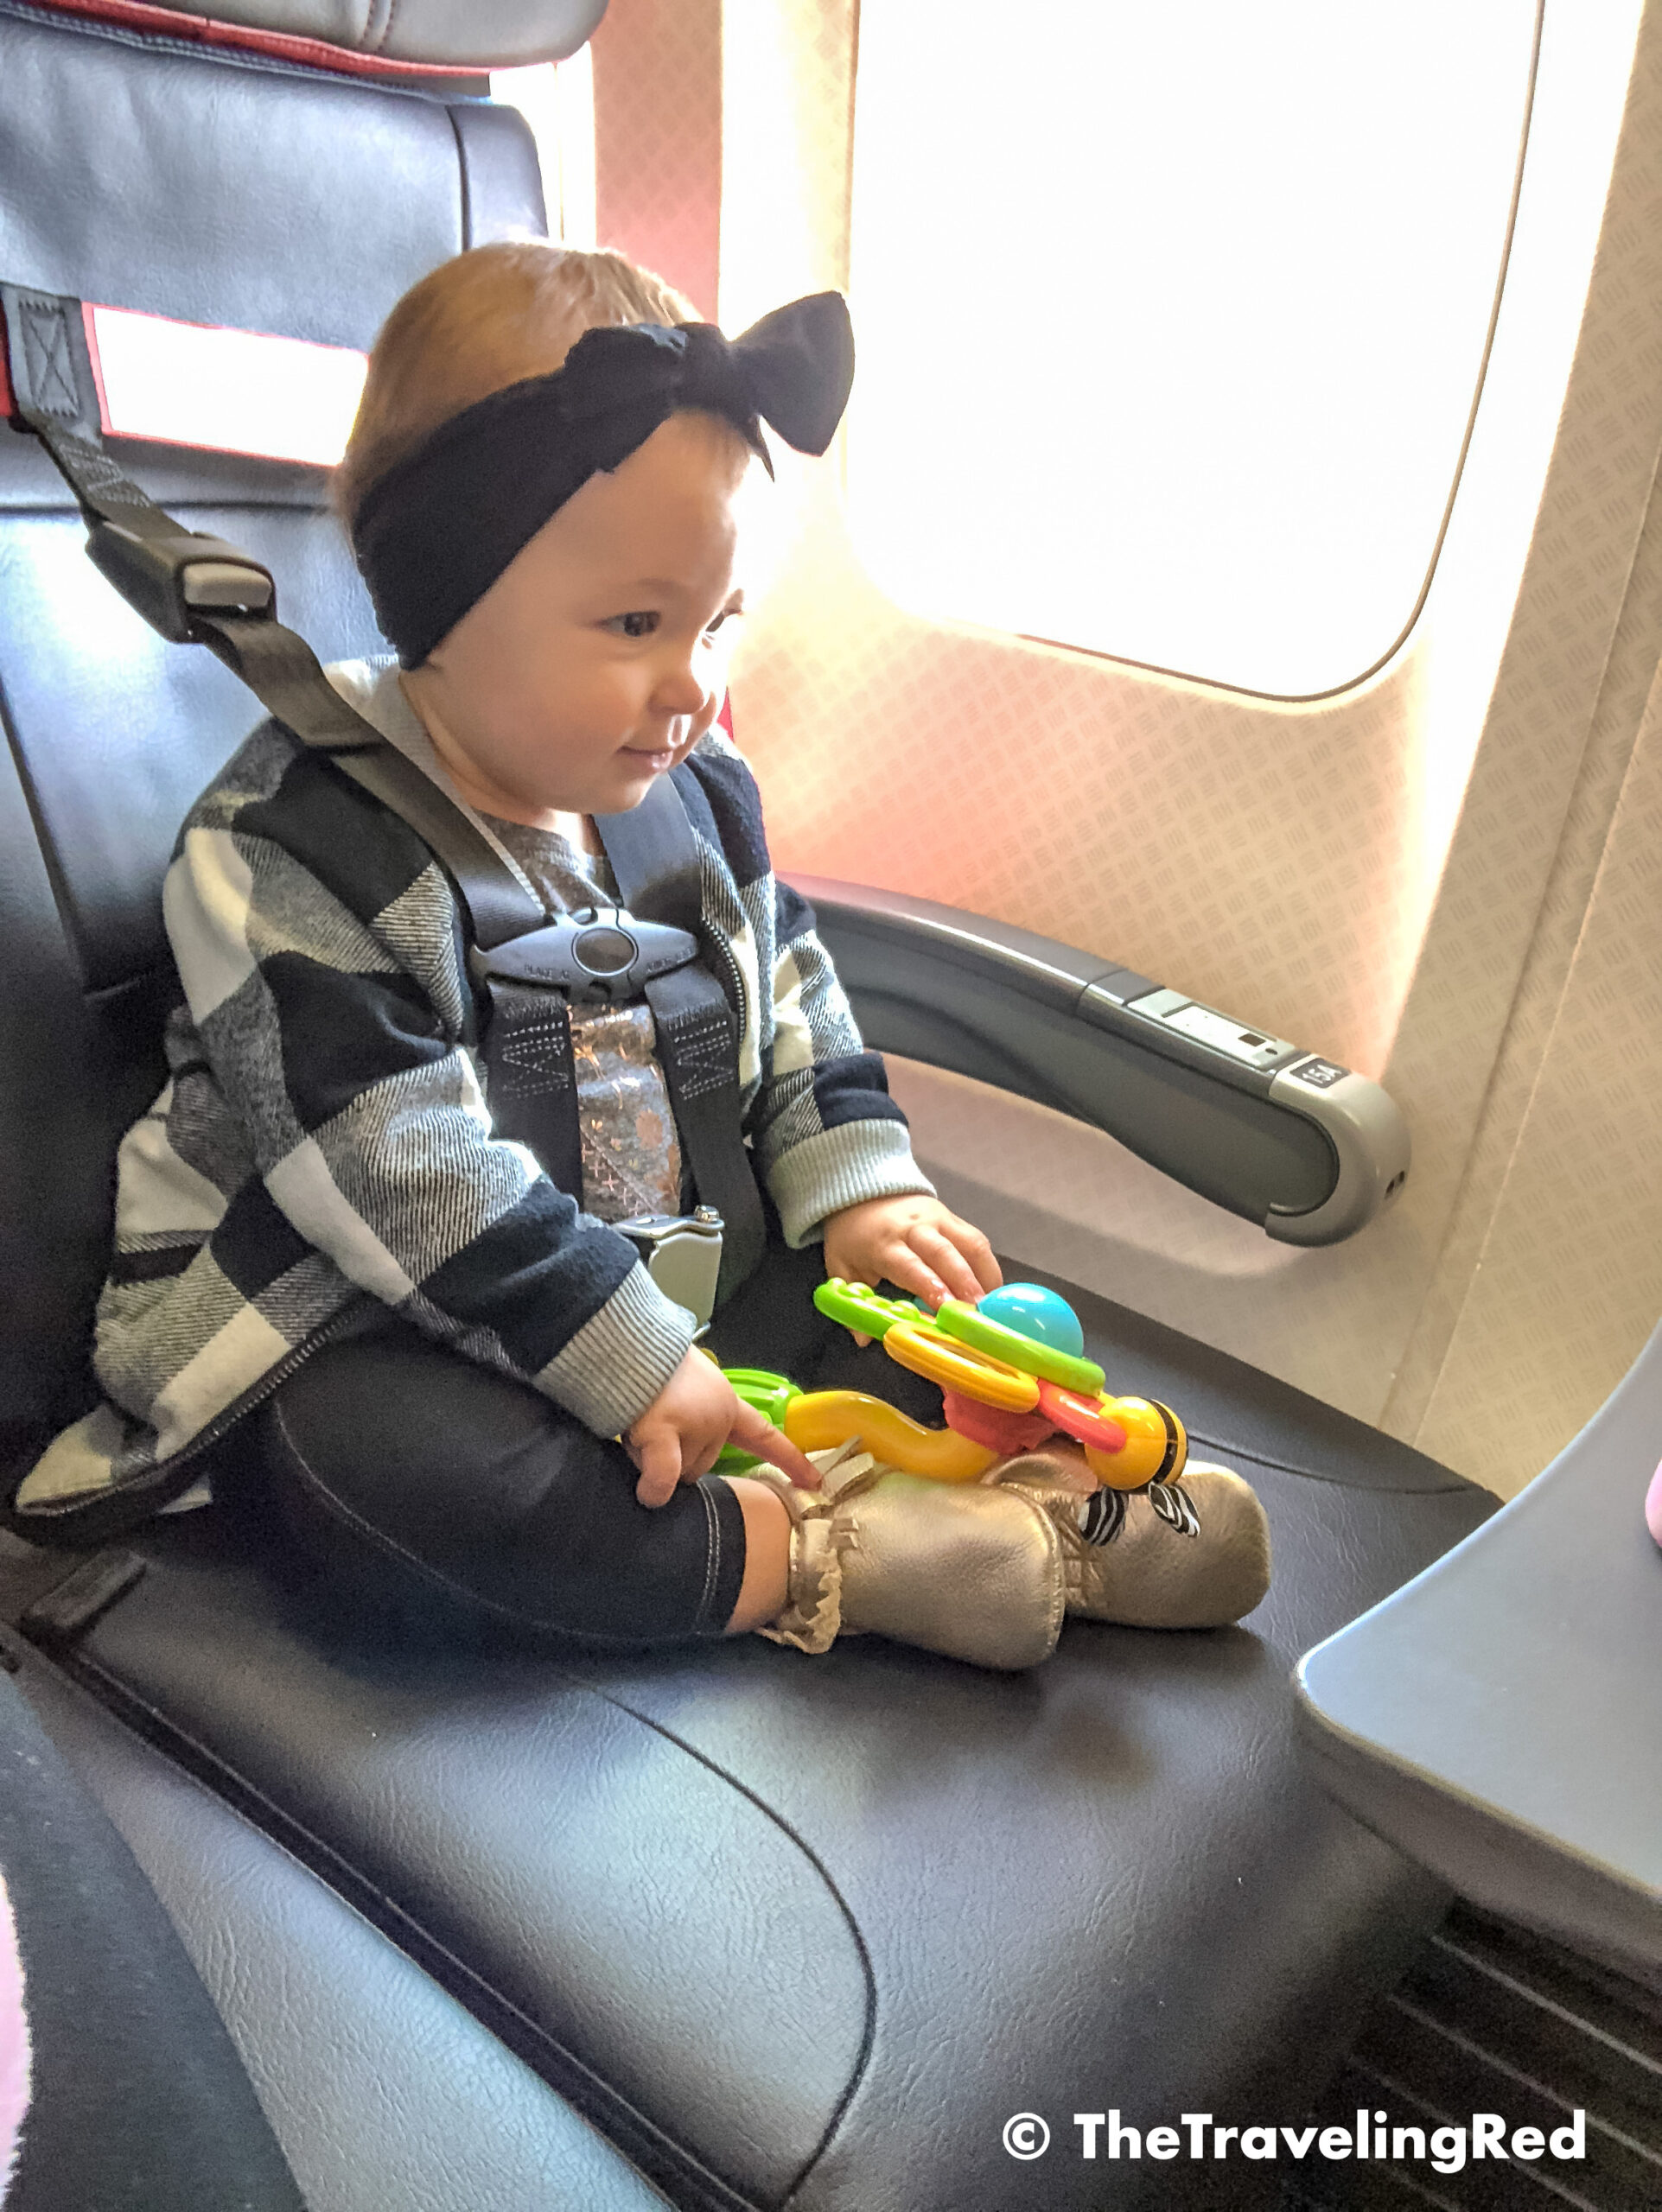 First time using her FAA approved airplane harness. It is an alternative to installing a car seat on an airplane. It it small and fits in your purse. The harness works with the airplane lap belt to restrain similar to a car seat. It does not affect the person sitting behind you because it goes under their tray table.